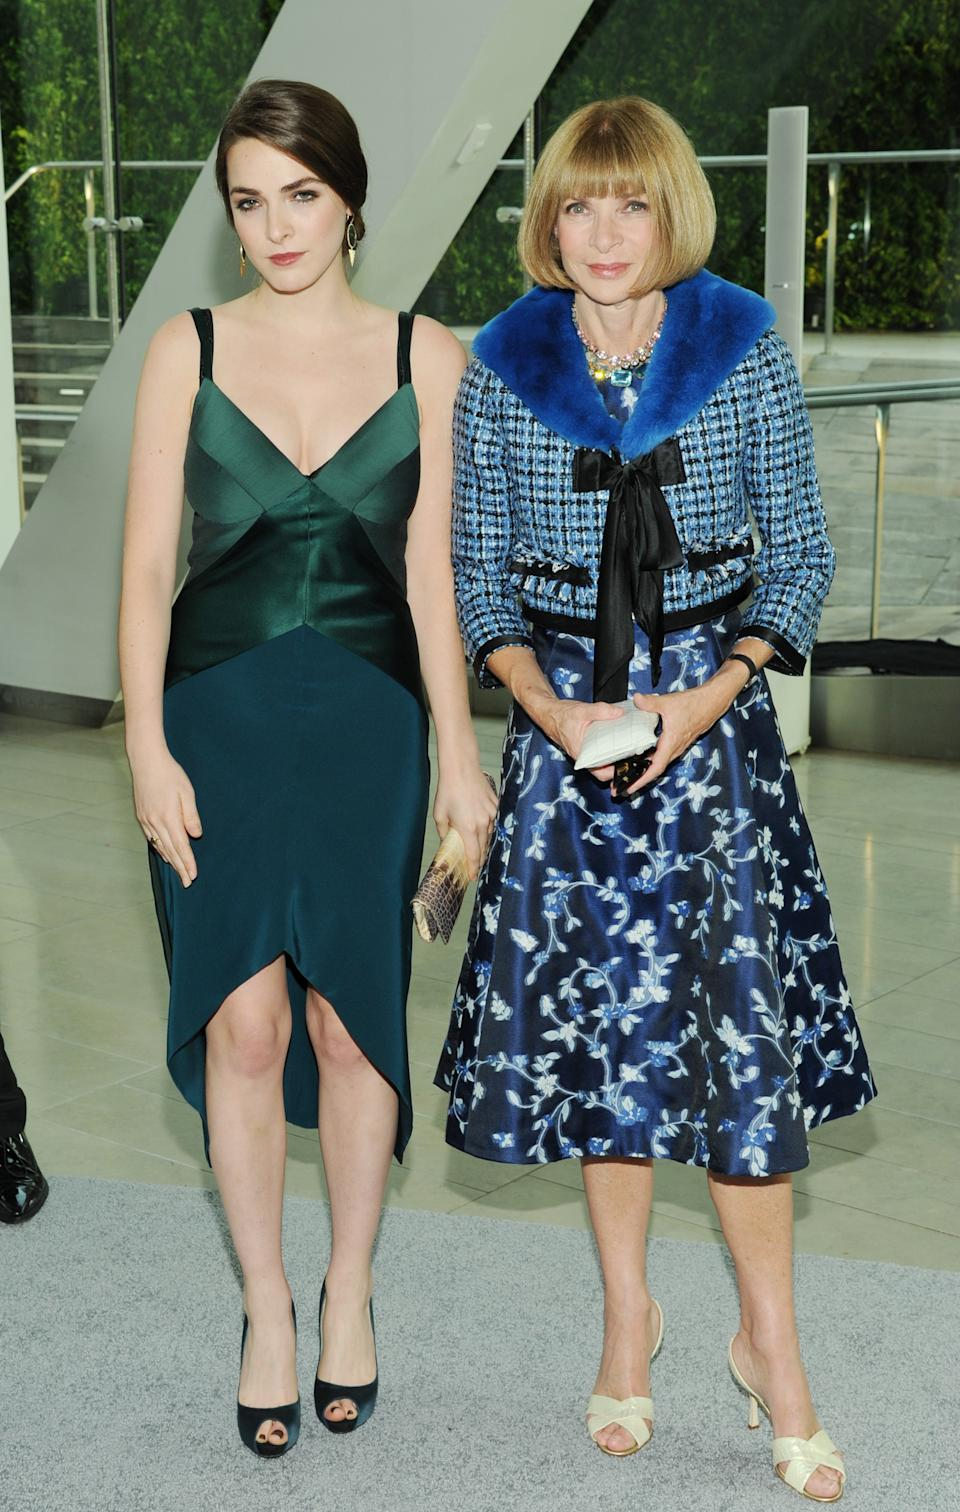 Bee Shaffer, left, and her mother Anna Wintour attend the 2013 CFDA Fashion Awards at Alice Tully Hall on Monday, June 3, 2013 in New York. (Photo by Evan Agostini/Invision/AP)